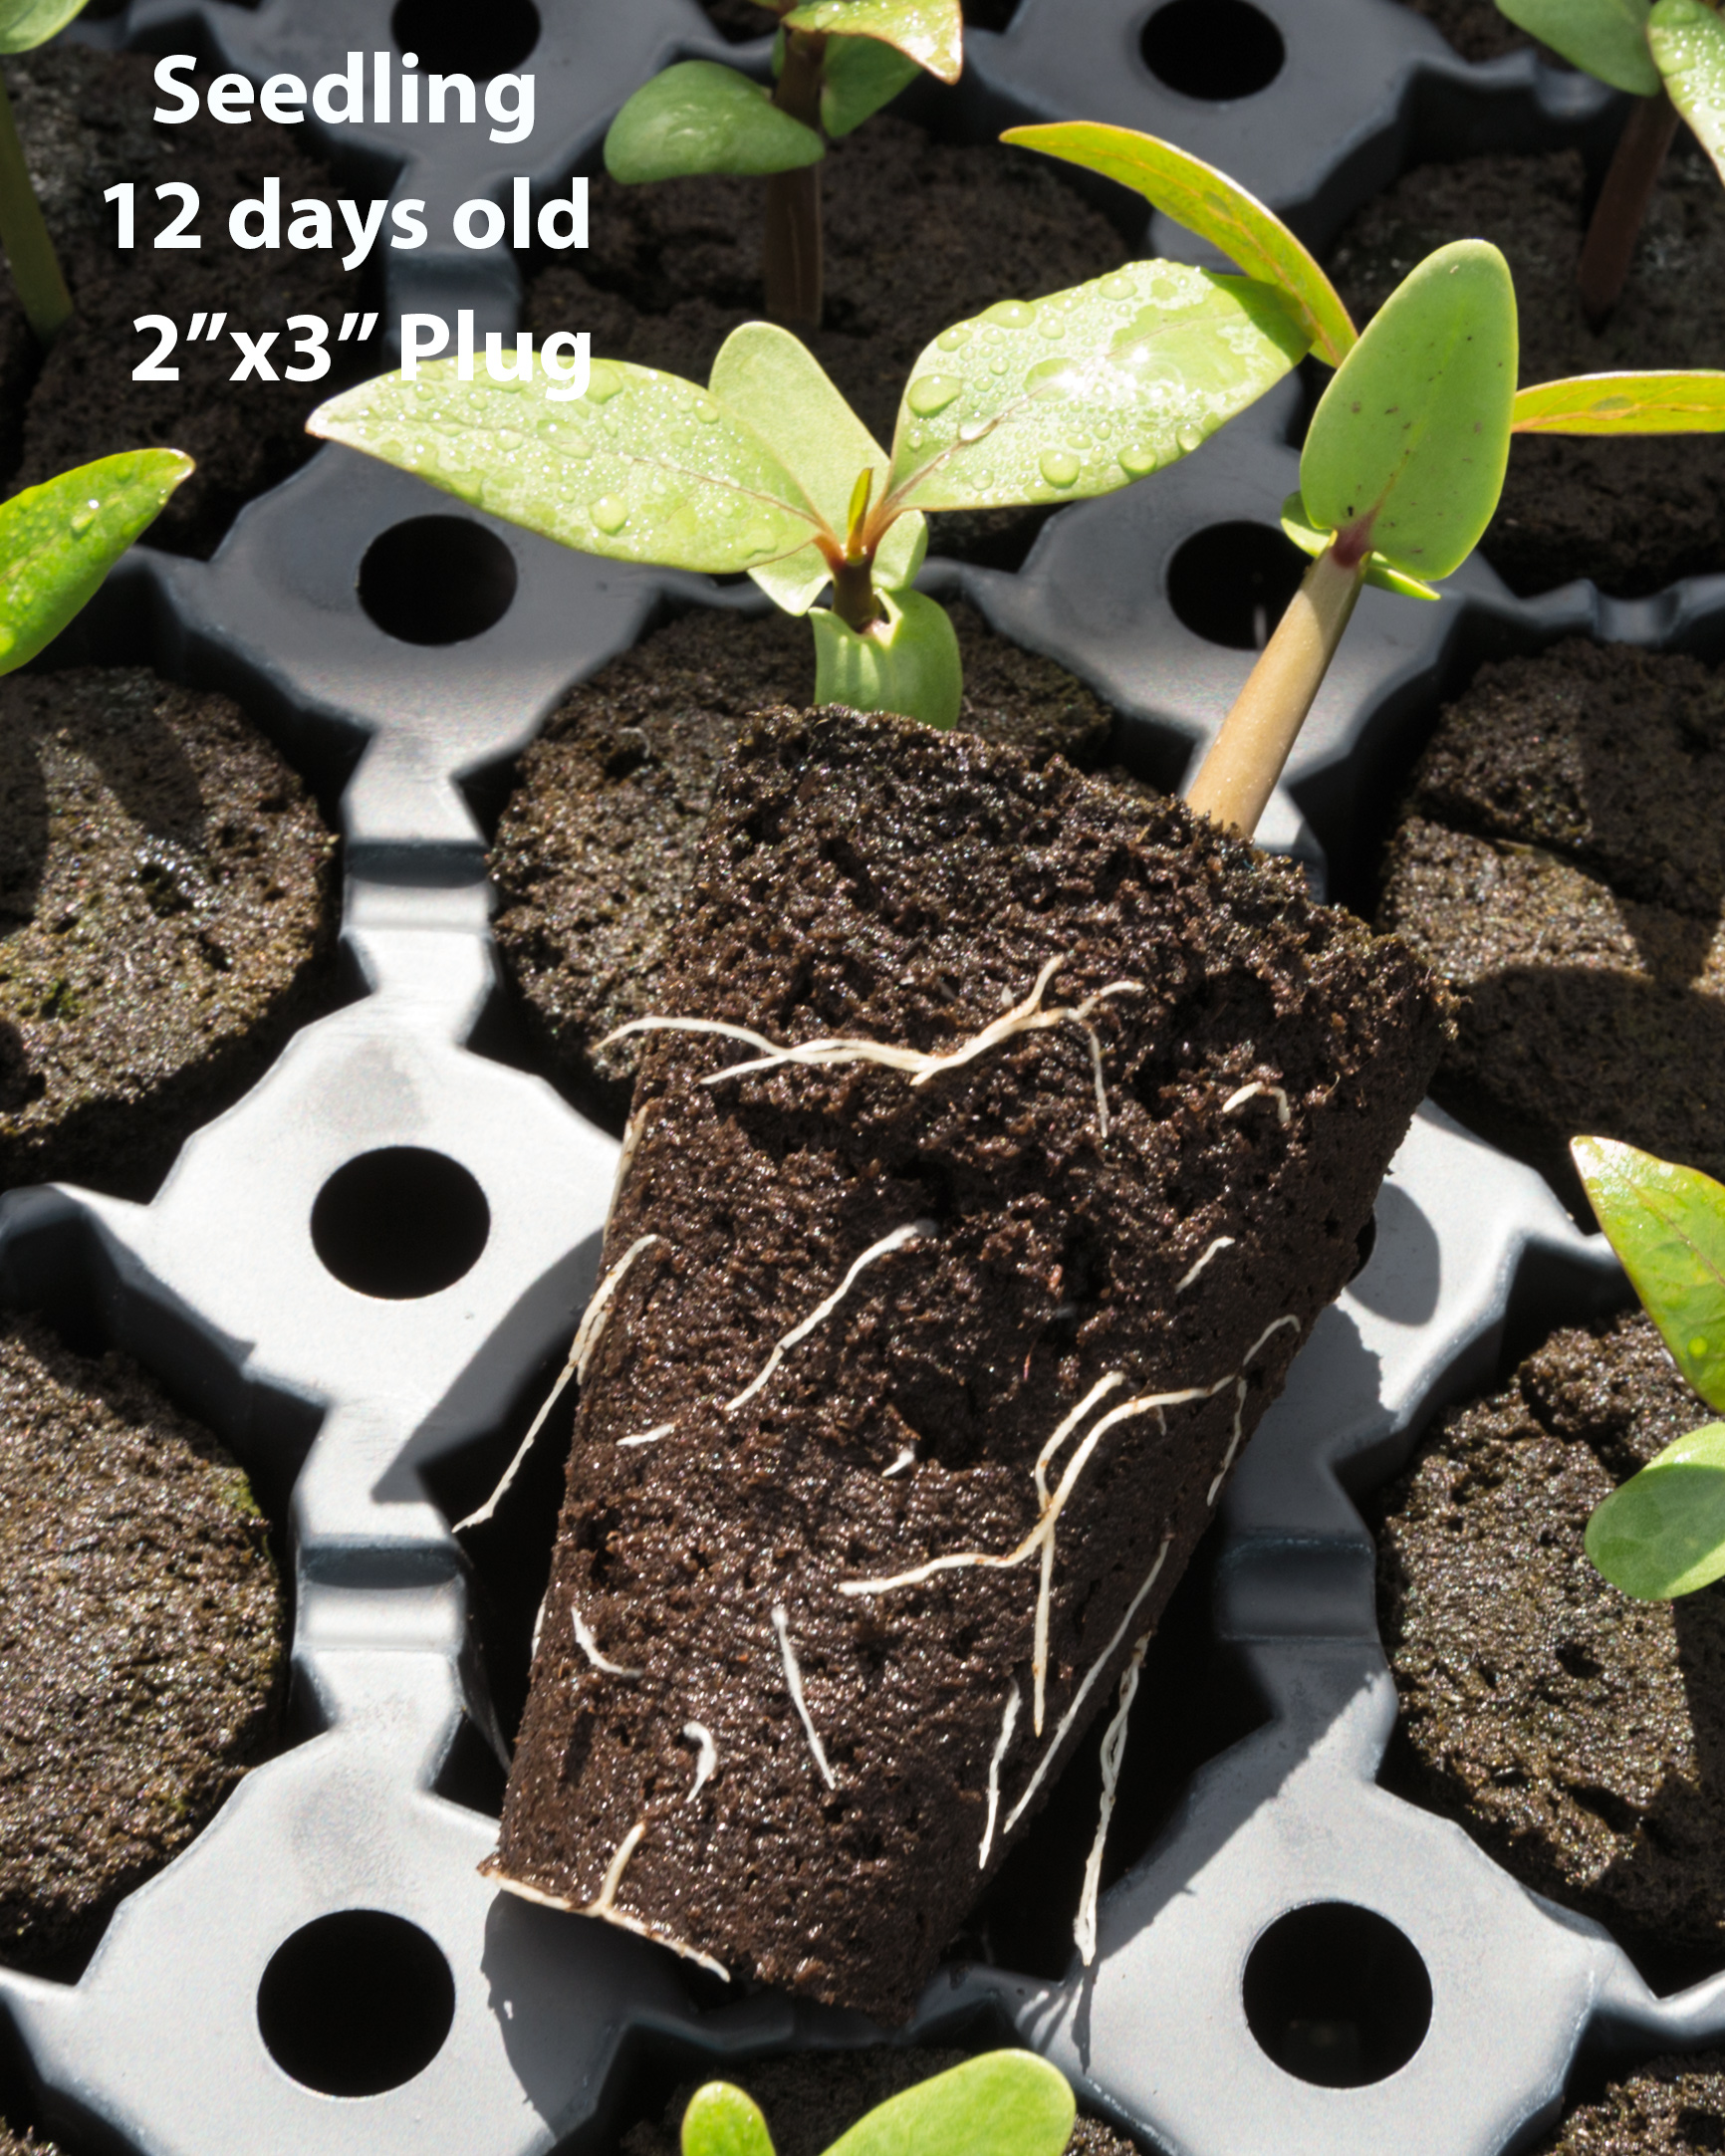 large-plug-seedling-12-days-8348.jpg